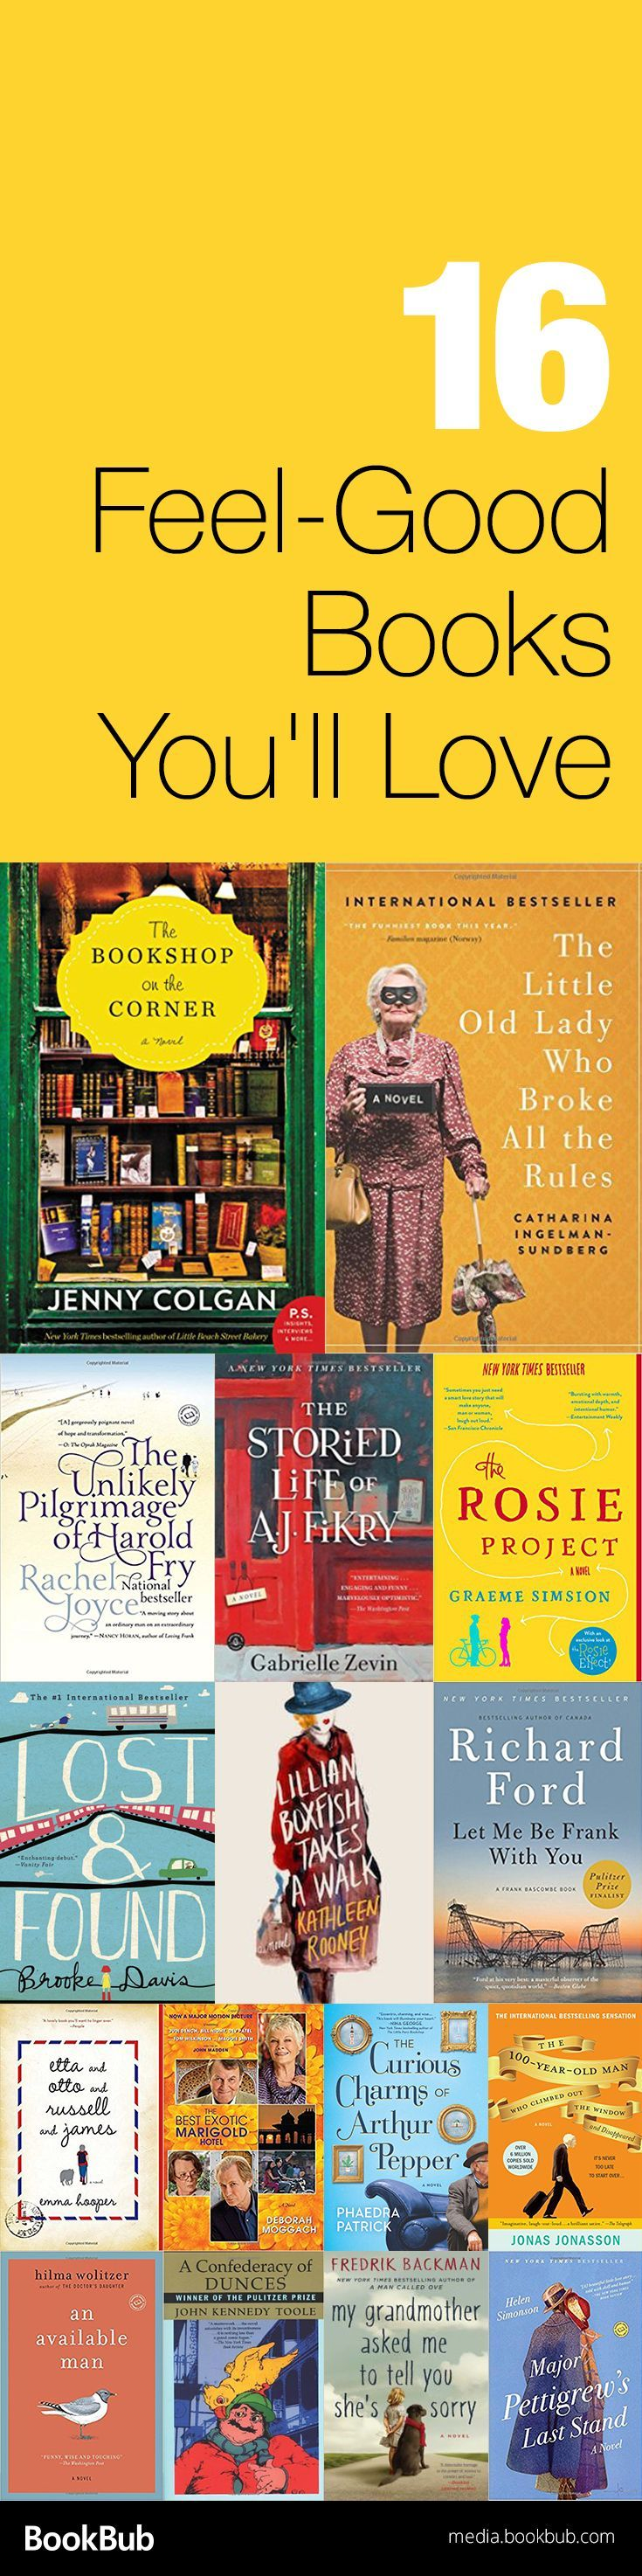 16 feel-good books. If you're looking for inspiration or motivation, these light-hearted but emotional reads will stick with you.